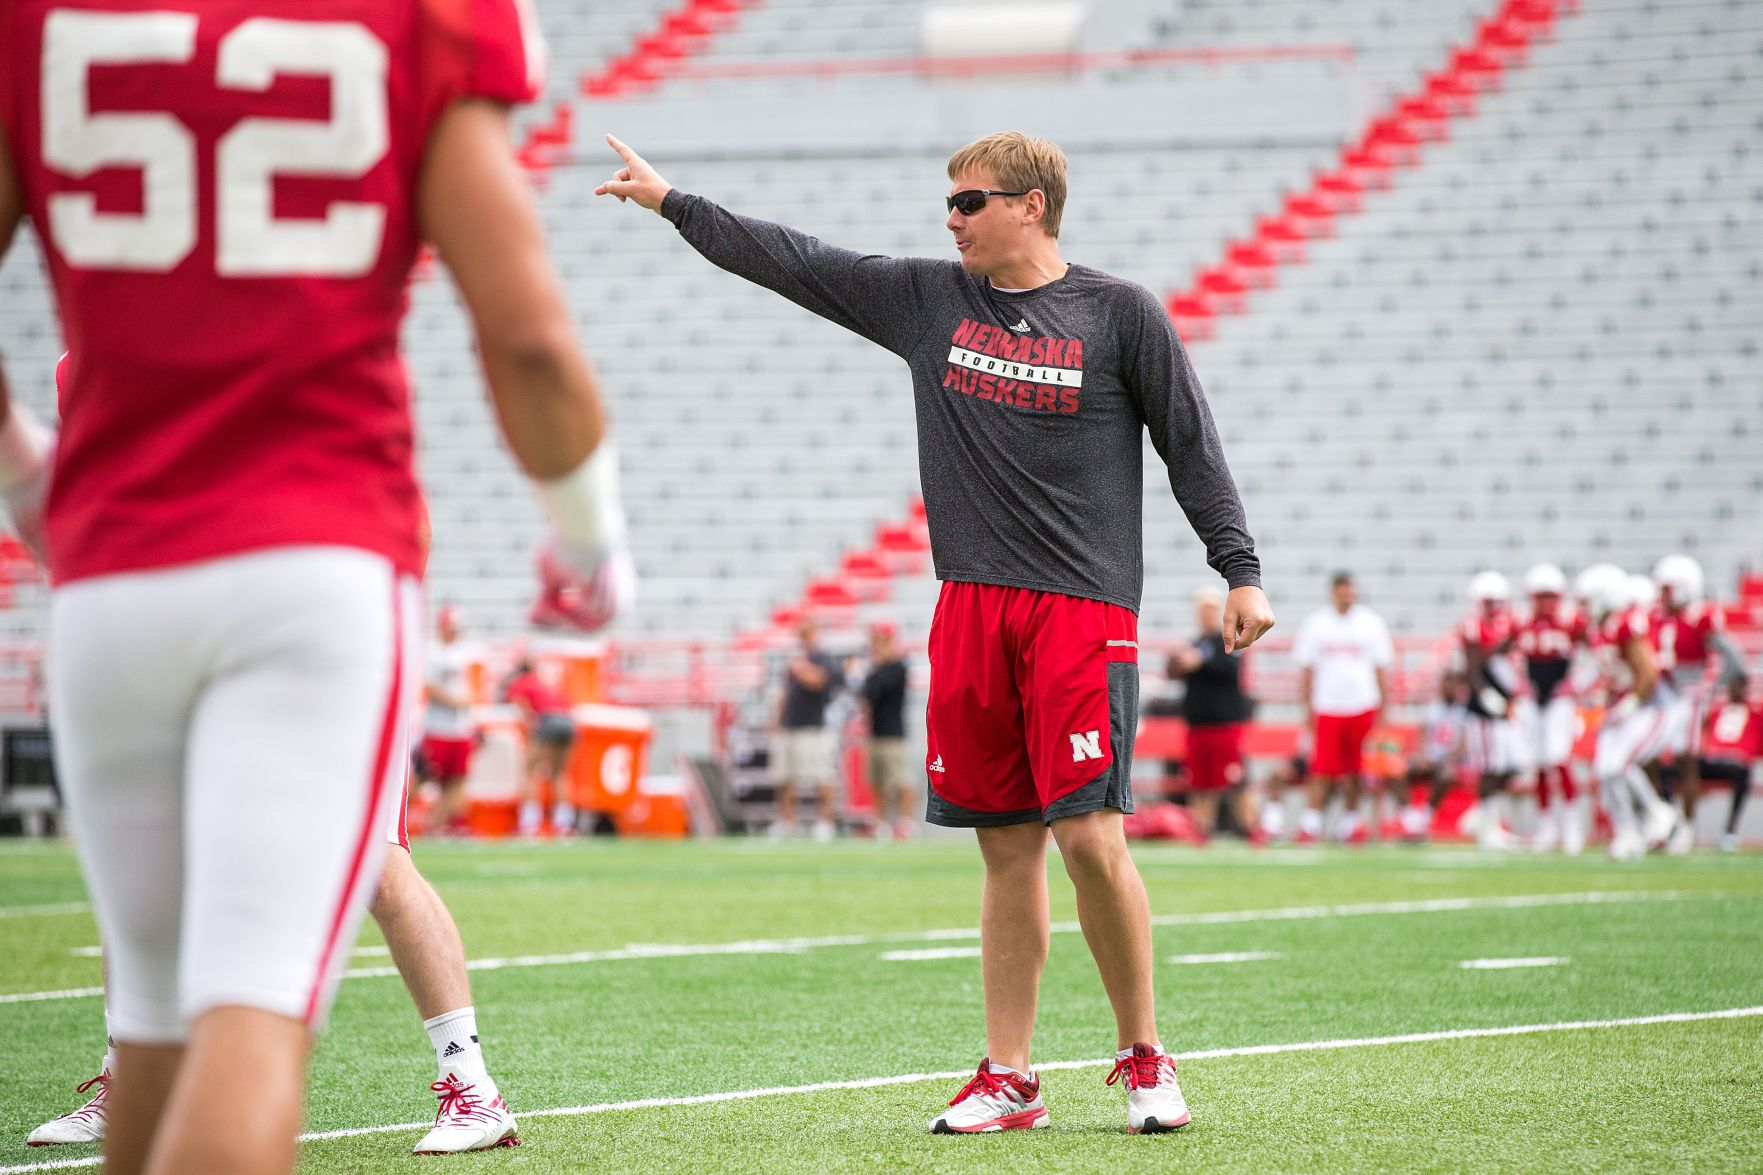 Things We Know about 3-0 Nebraska